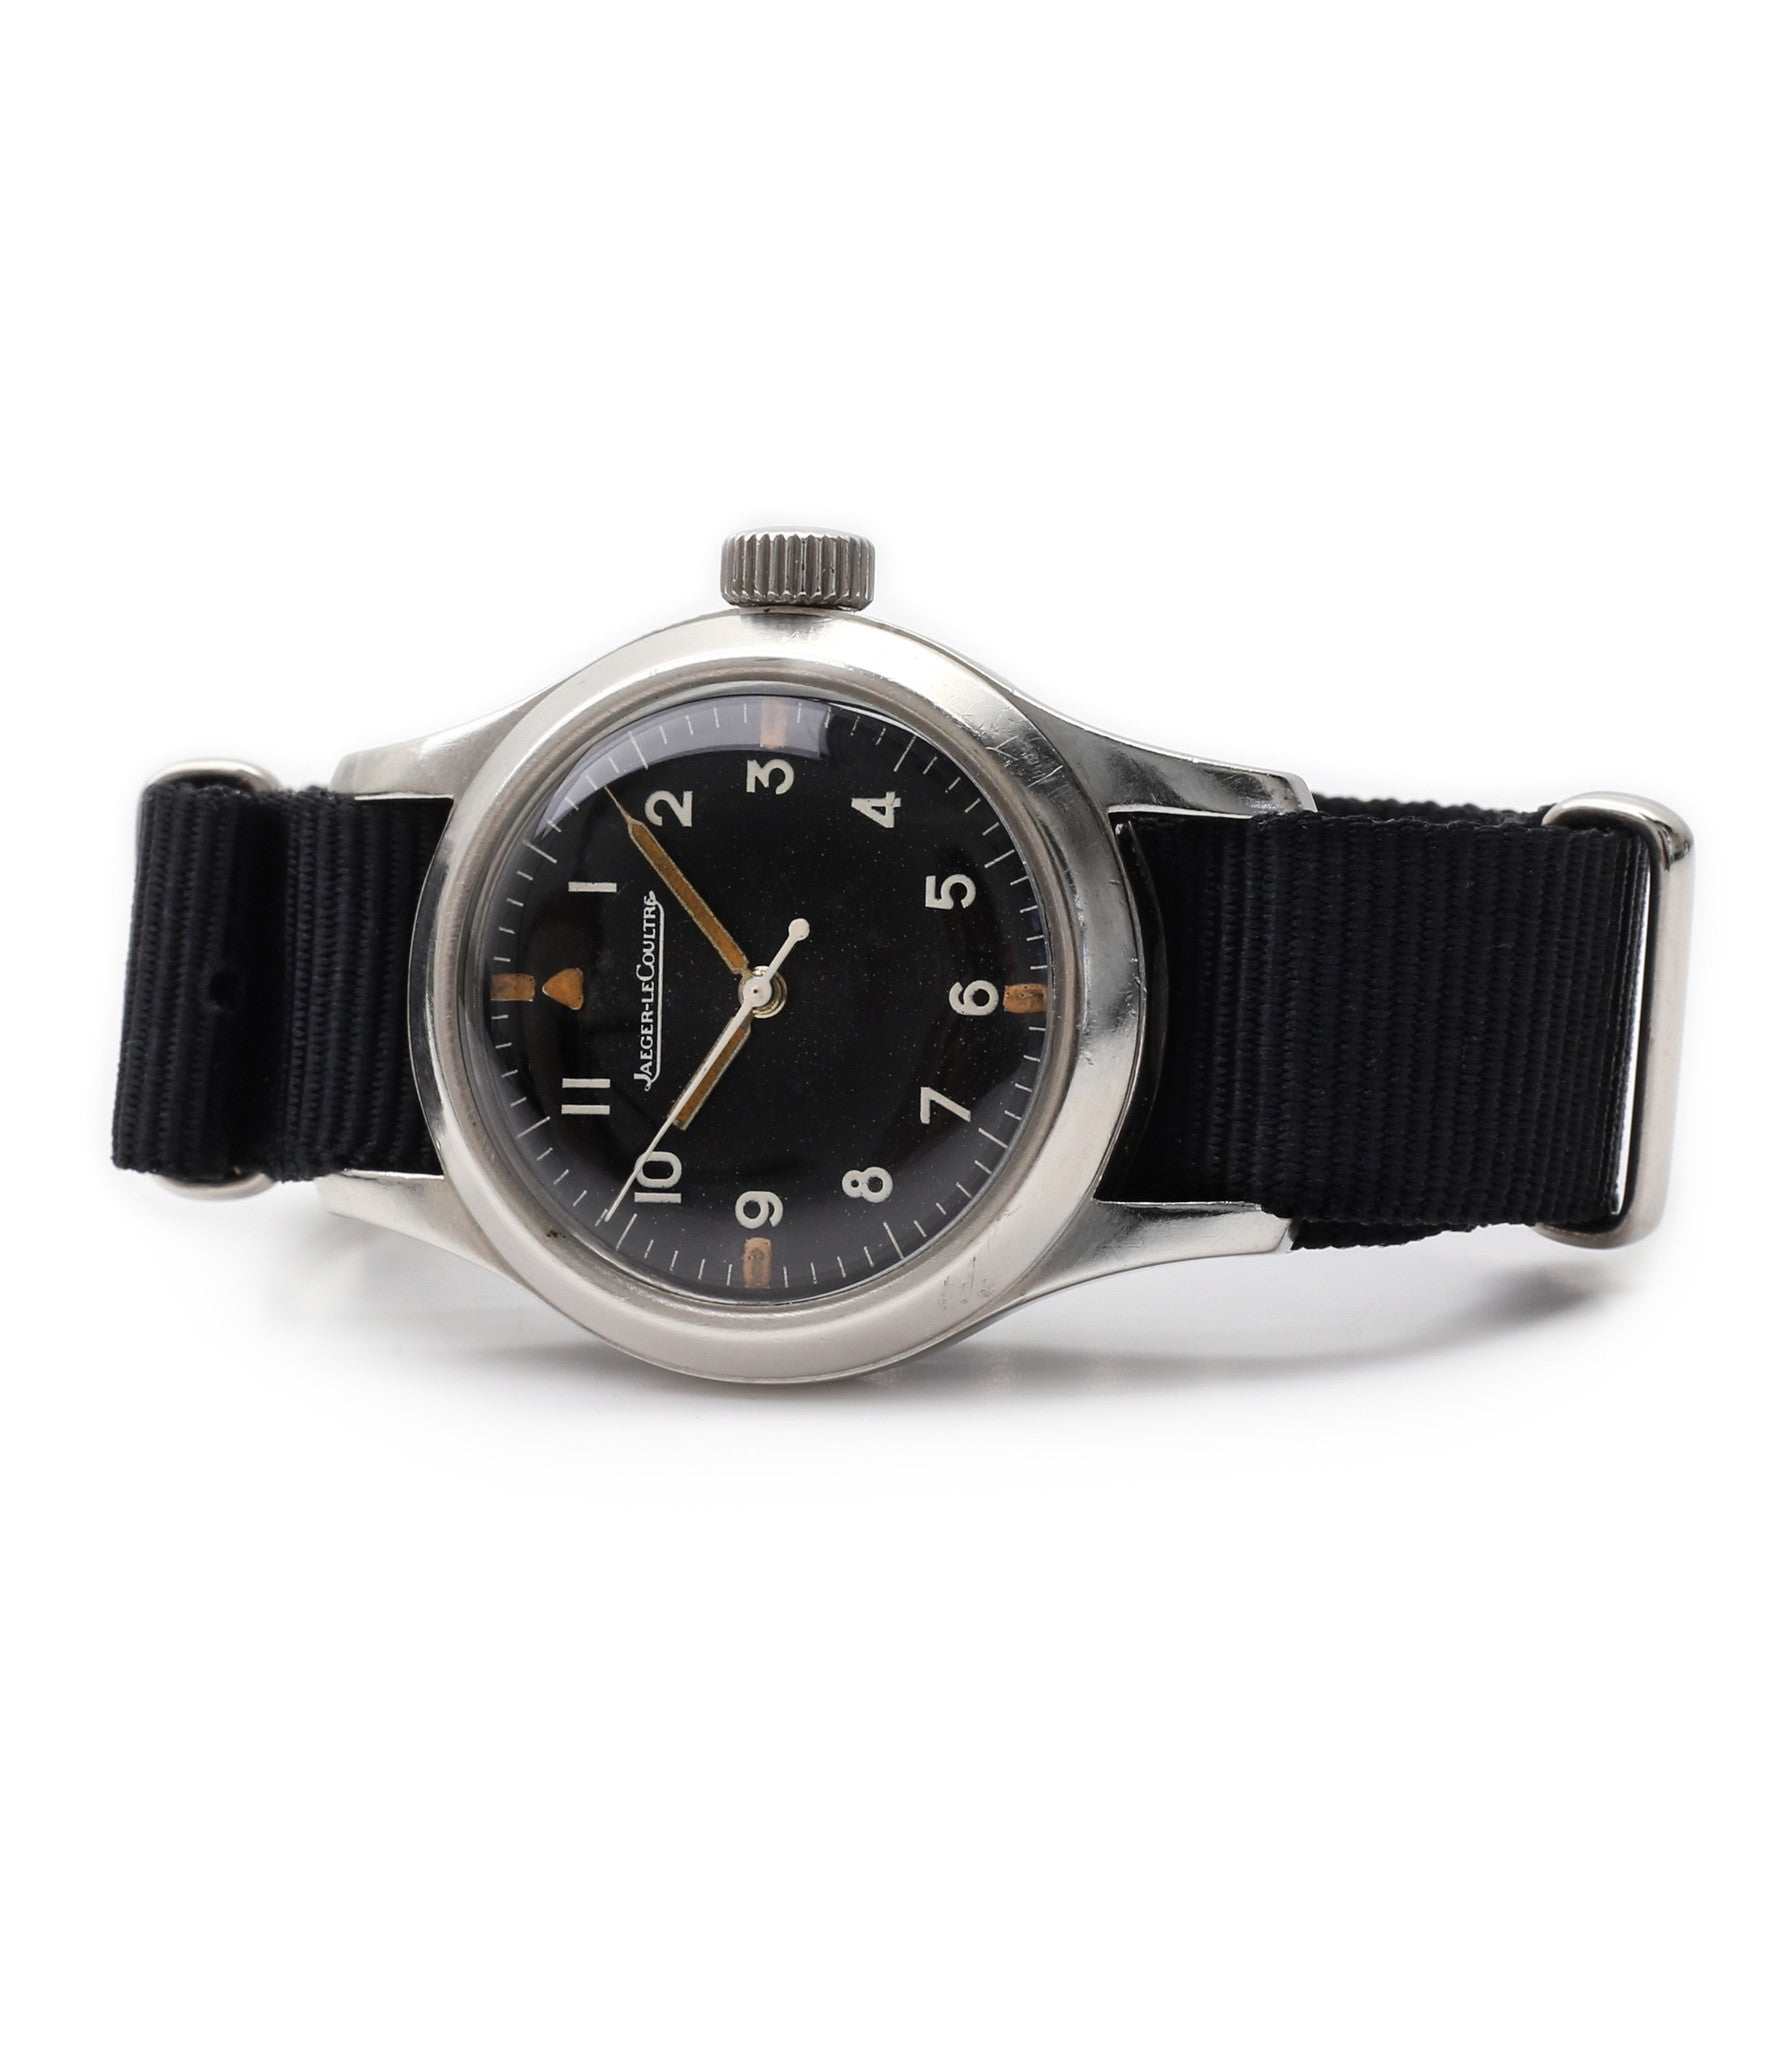 buy Australian Air Force RAAF Jaeger-LeCoultre Mark 11 vintage military pilot watch G6B/346 watch for sale online at A Collected Man London vintage military watch specialist